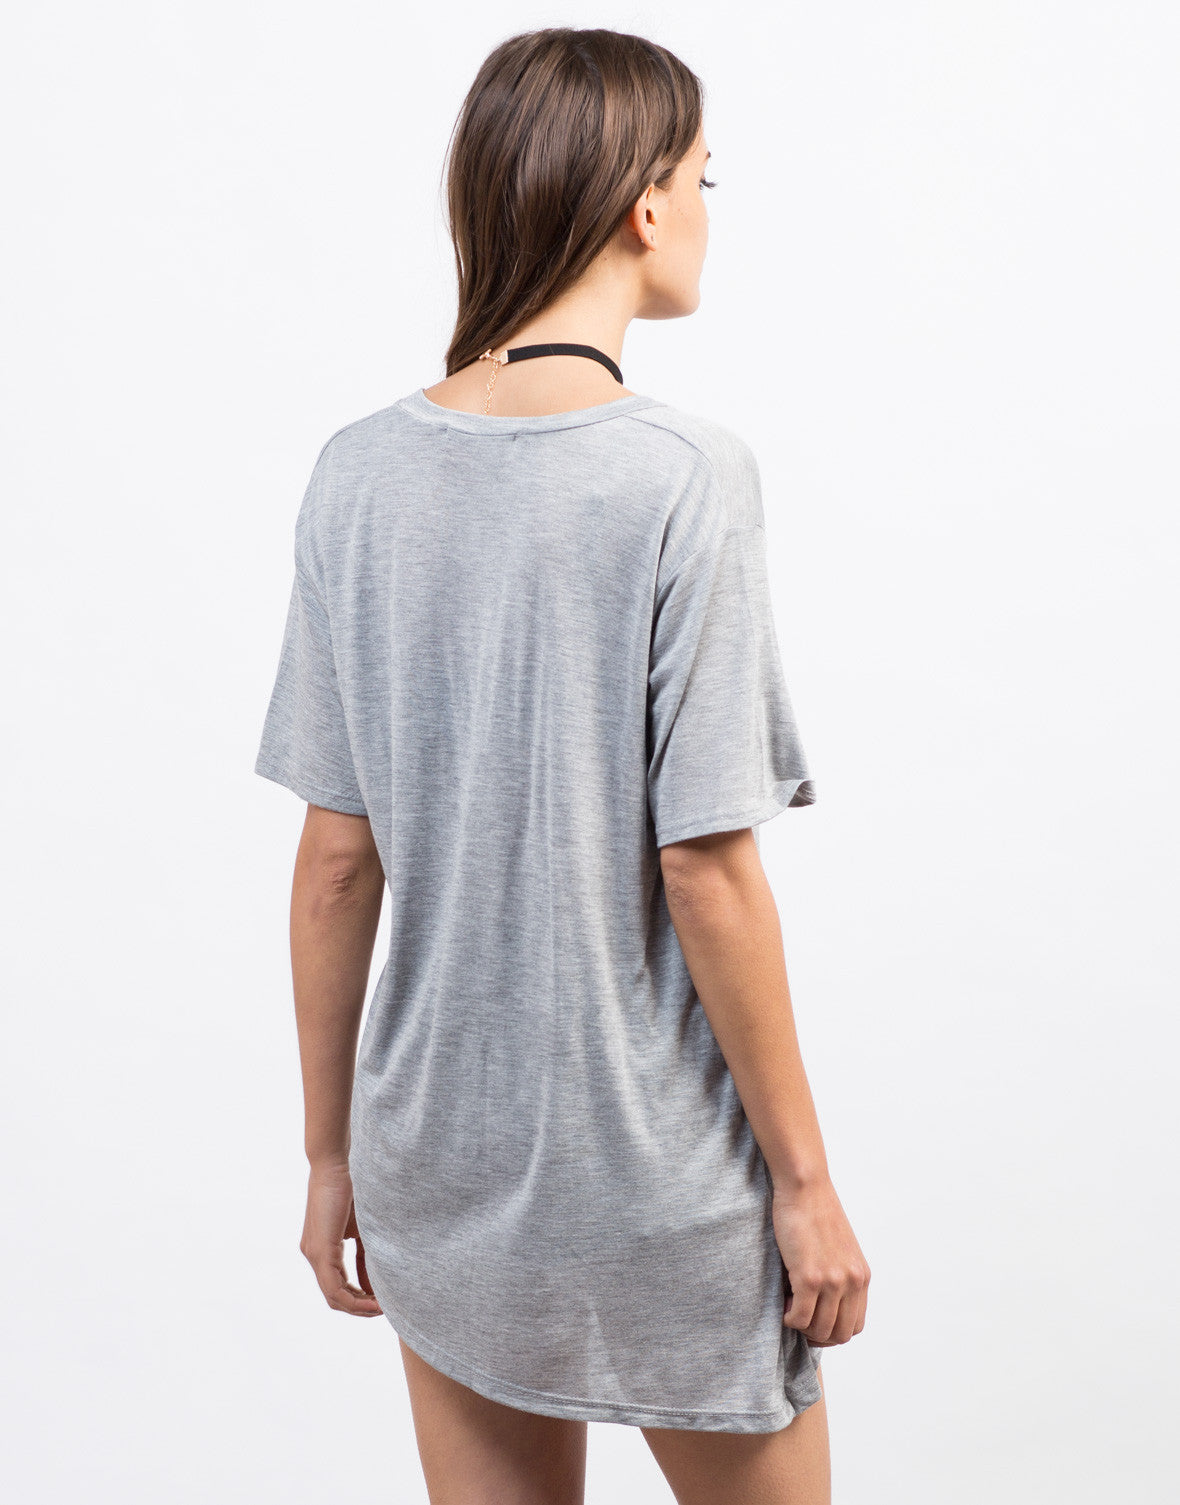 Back View of Distressed Asymmetrical Tee